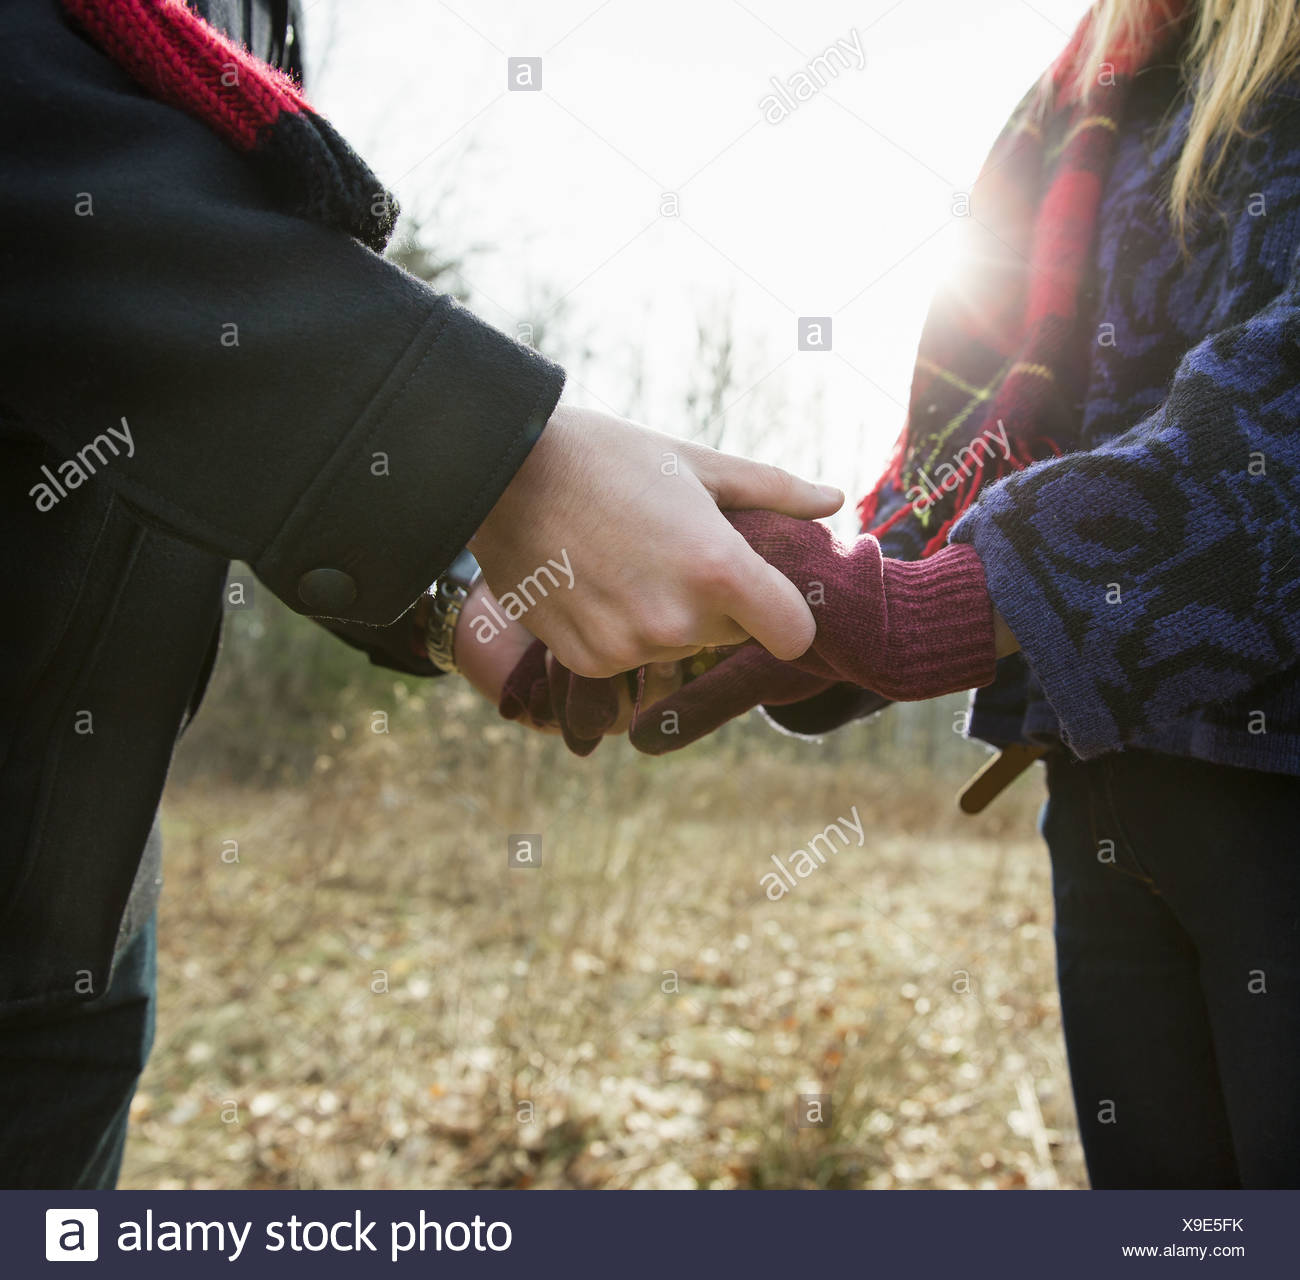 A couple in winter coats, outdoors on a winter's day. Holding hands. - Stock Image